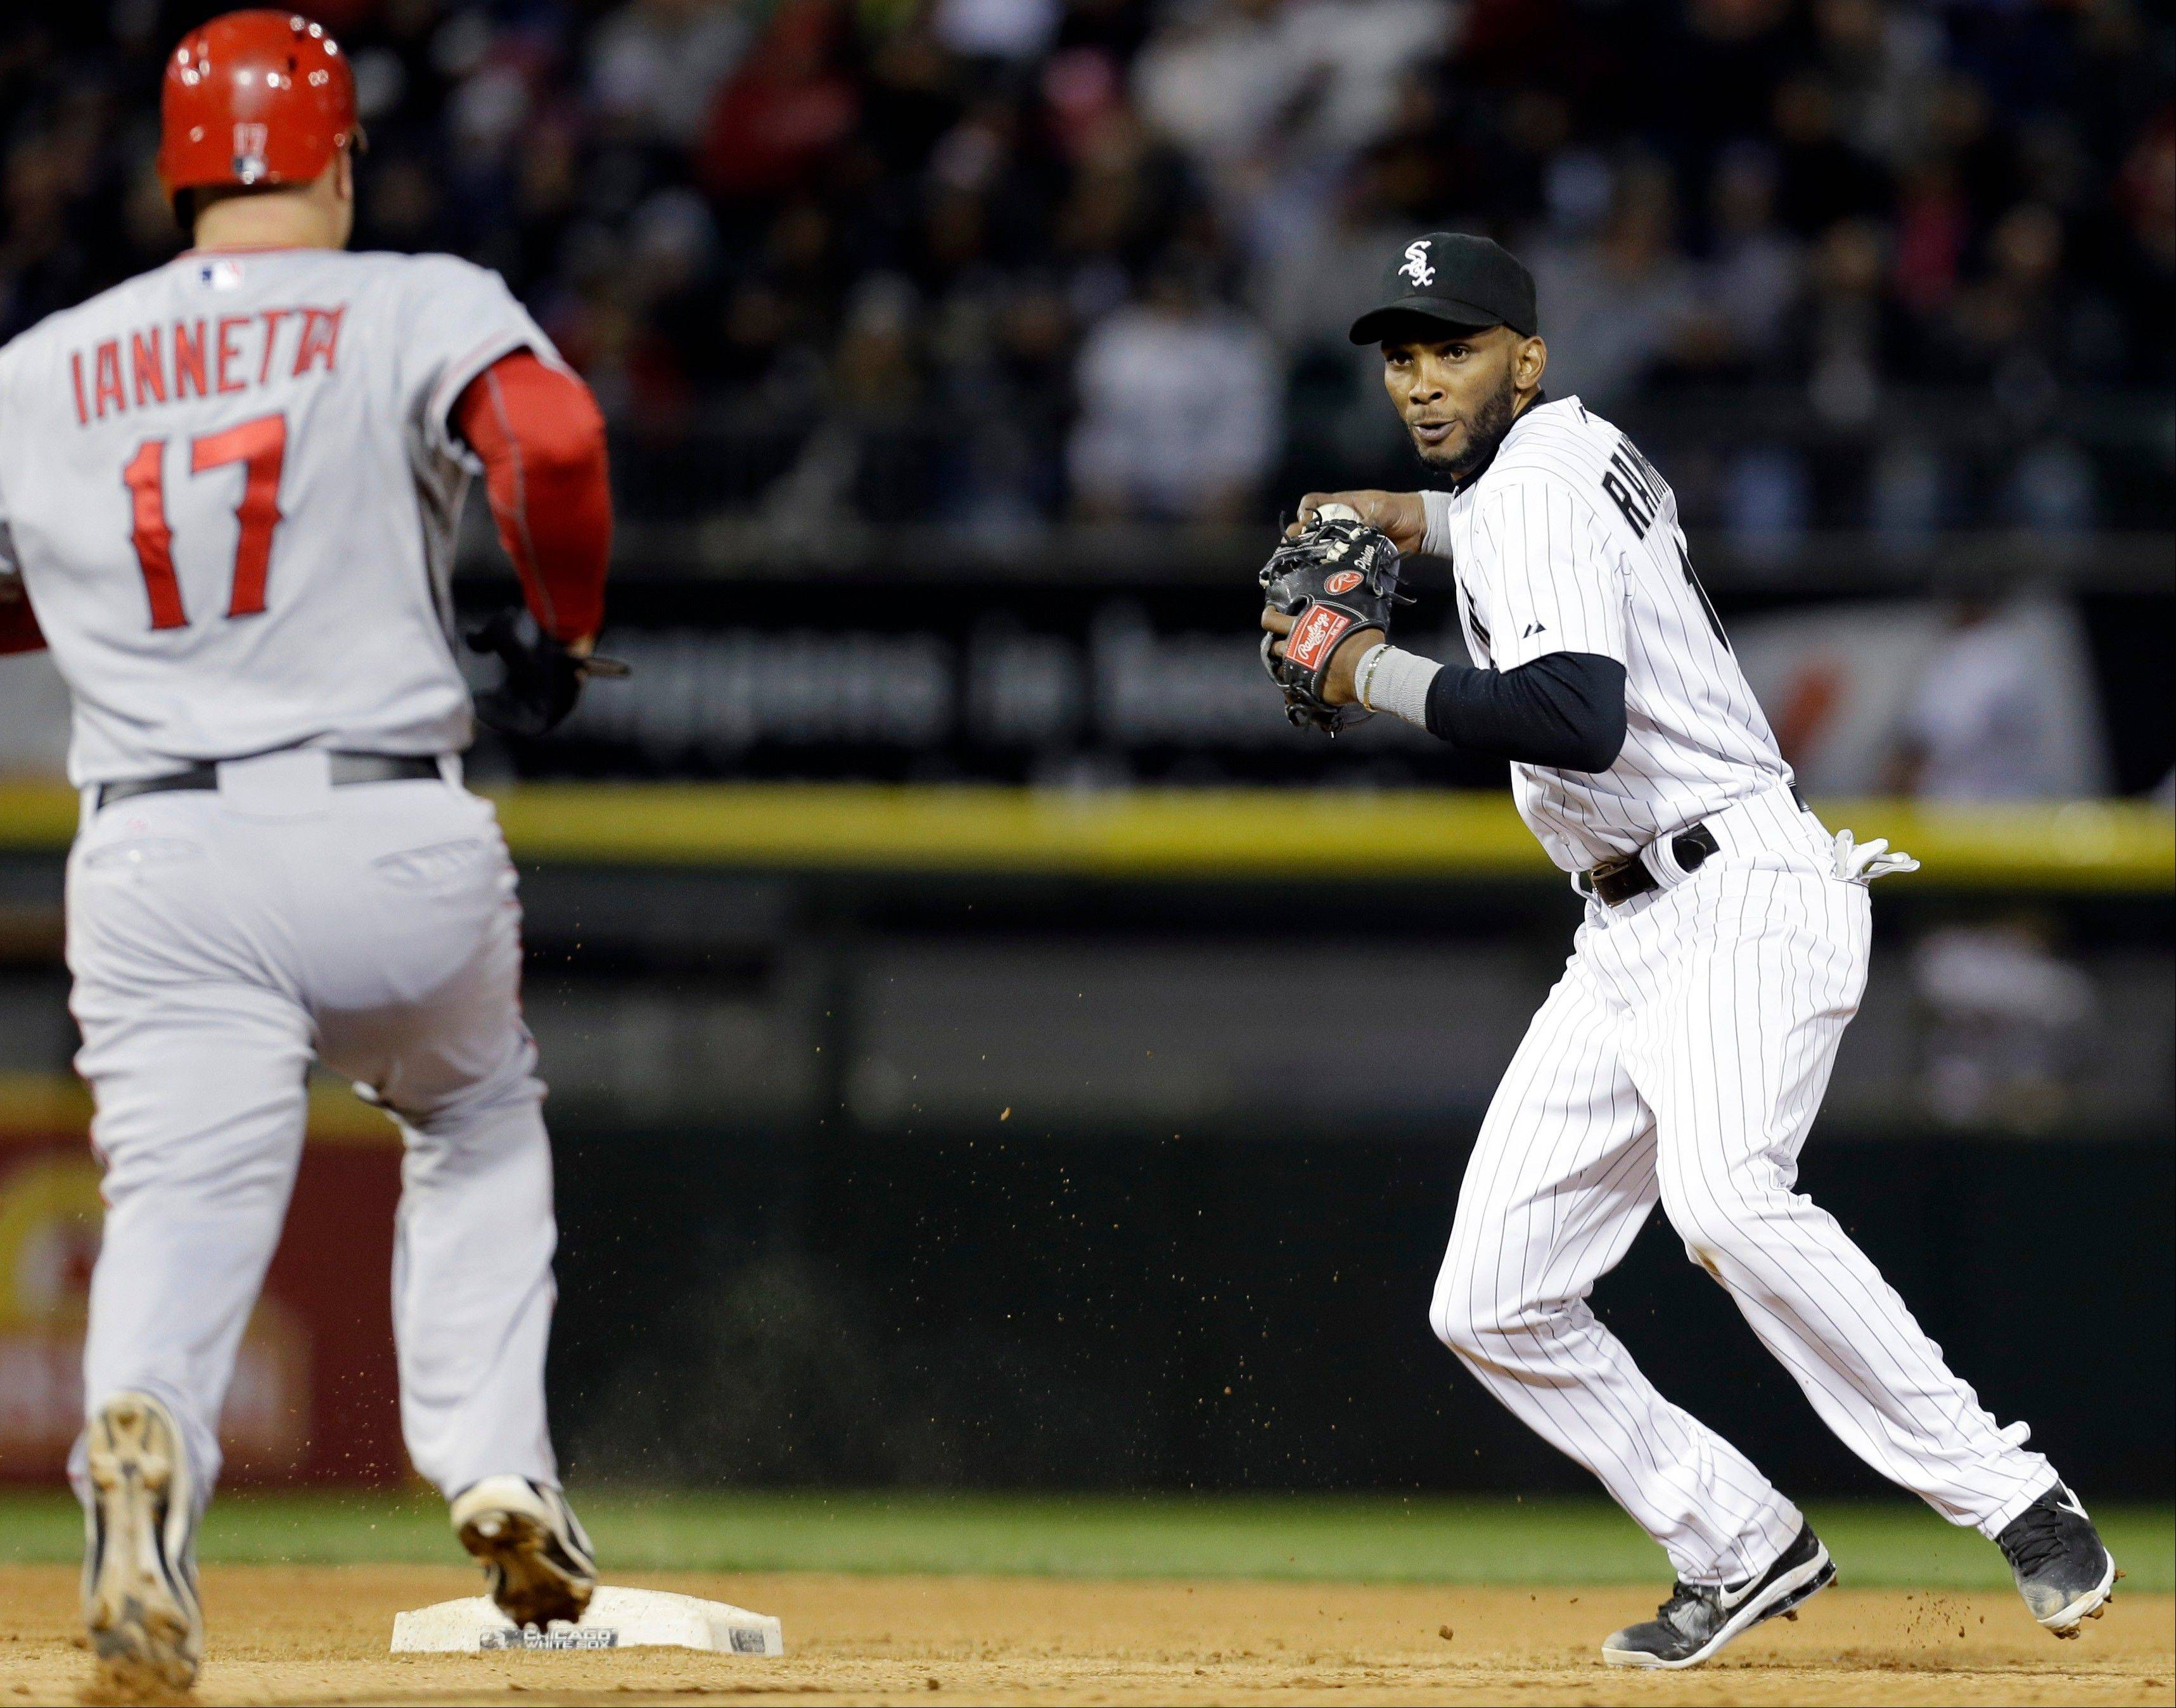 White Sox shortstop Alexei Ramirez looks to throw after forcing out the Angels� Chris Iannetta in Saturday night�s game. While defense has been an issue for the Sox this season, Chris Rongey says hitting has been the bigger problem.